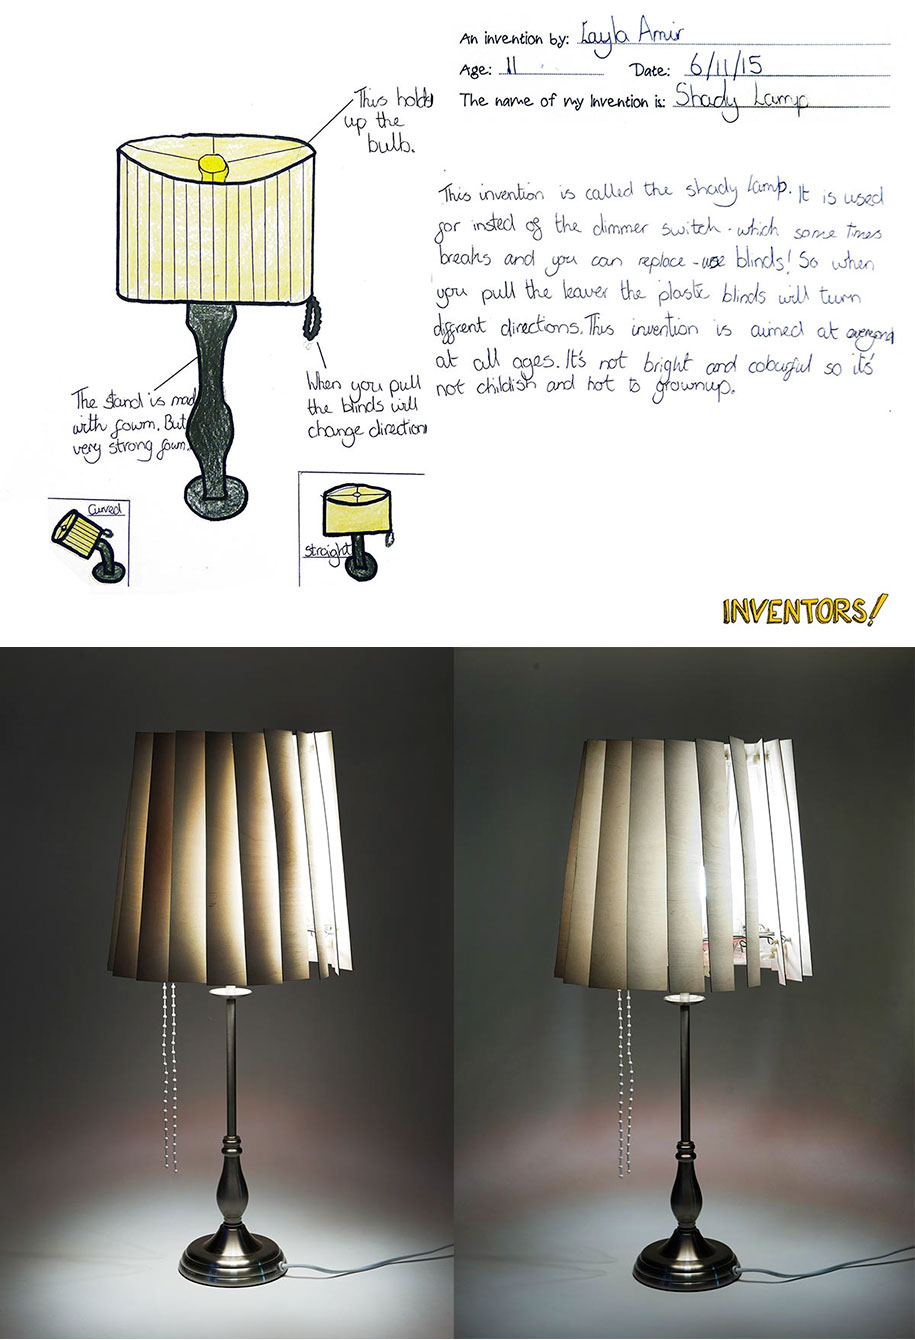 kids-inventions-real-products-inventors-project-dominic-wilcox-9